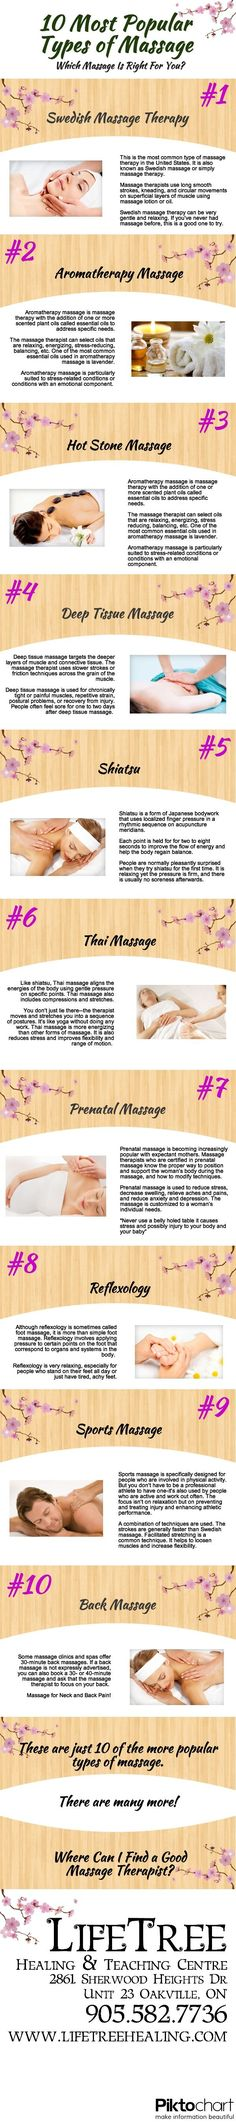 10 Most Popular Types of Massage    #lifetree #massage #massagetherapy www.lifetreehealing.com